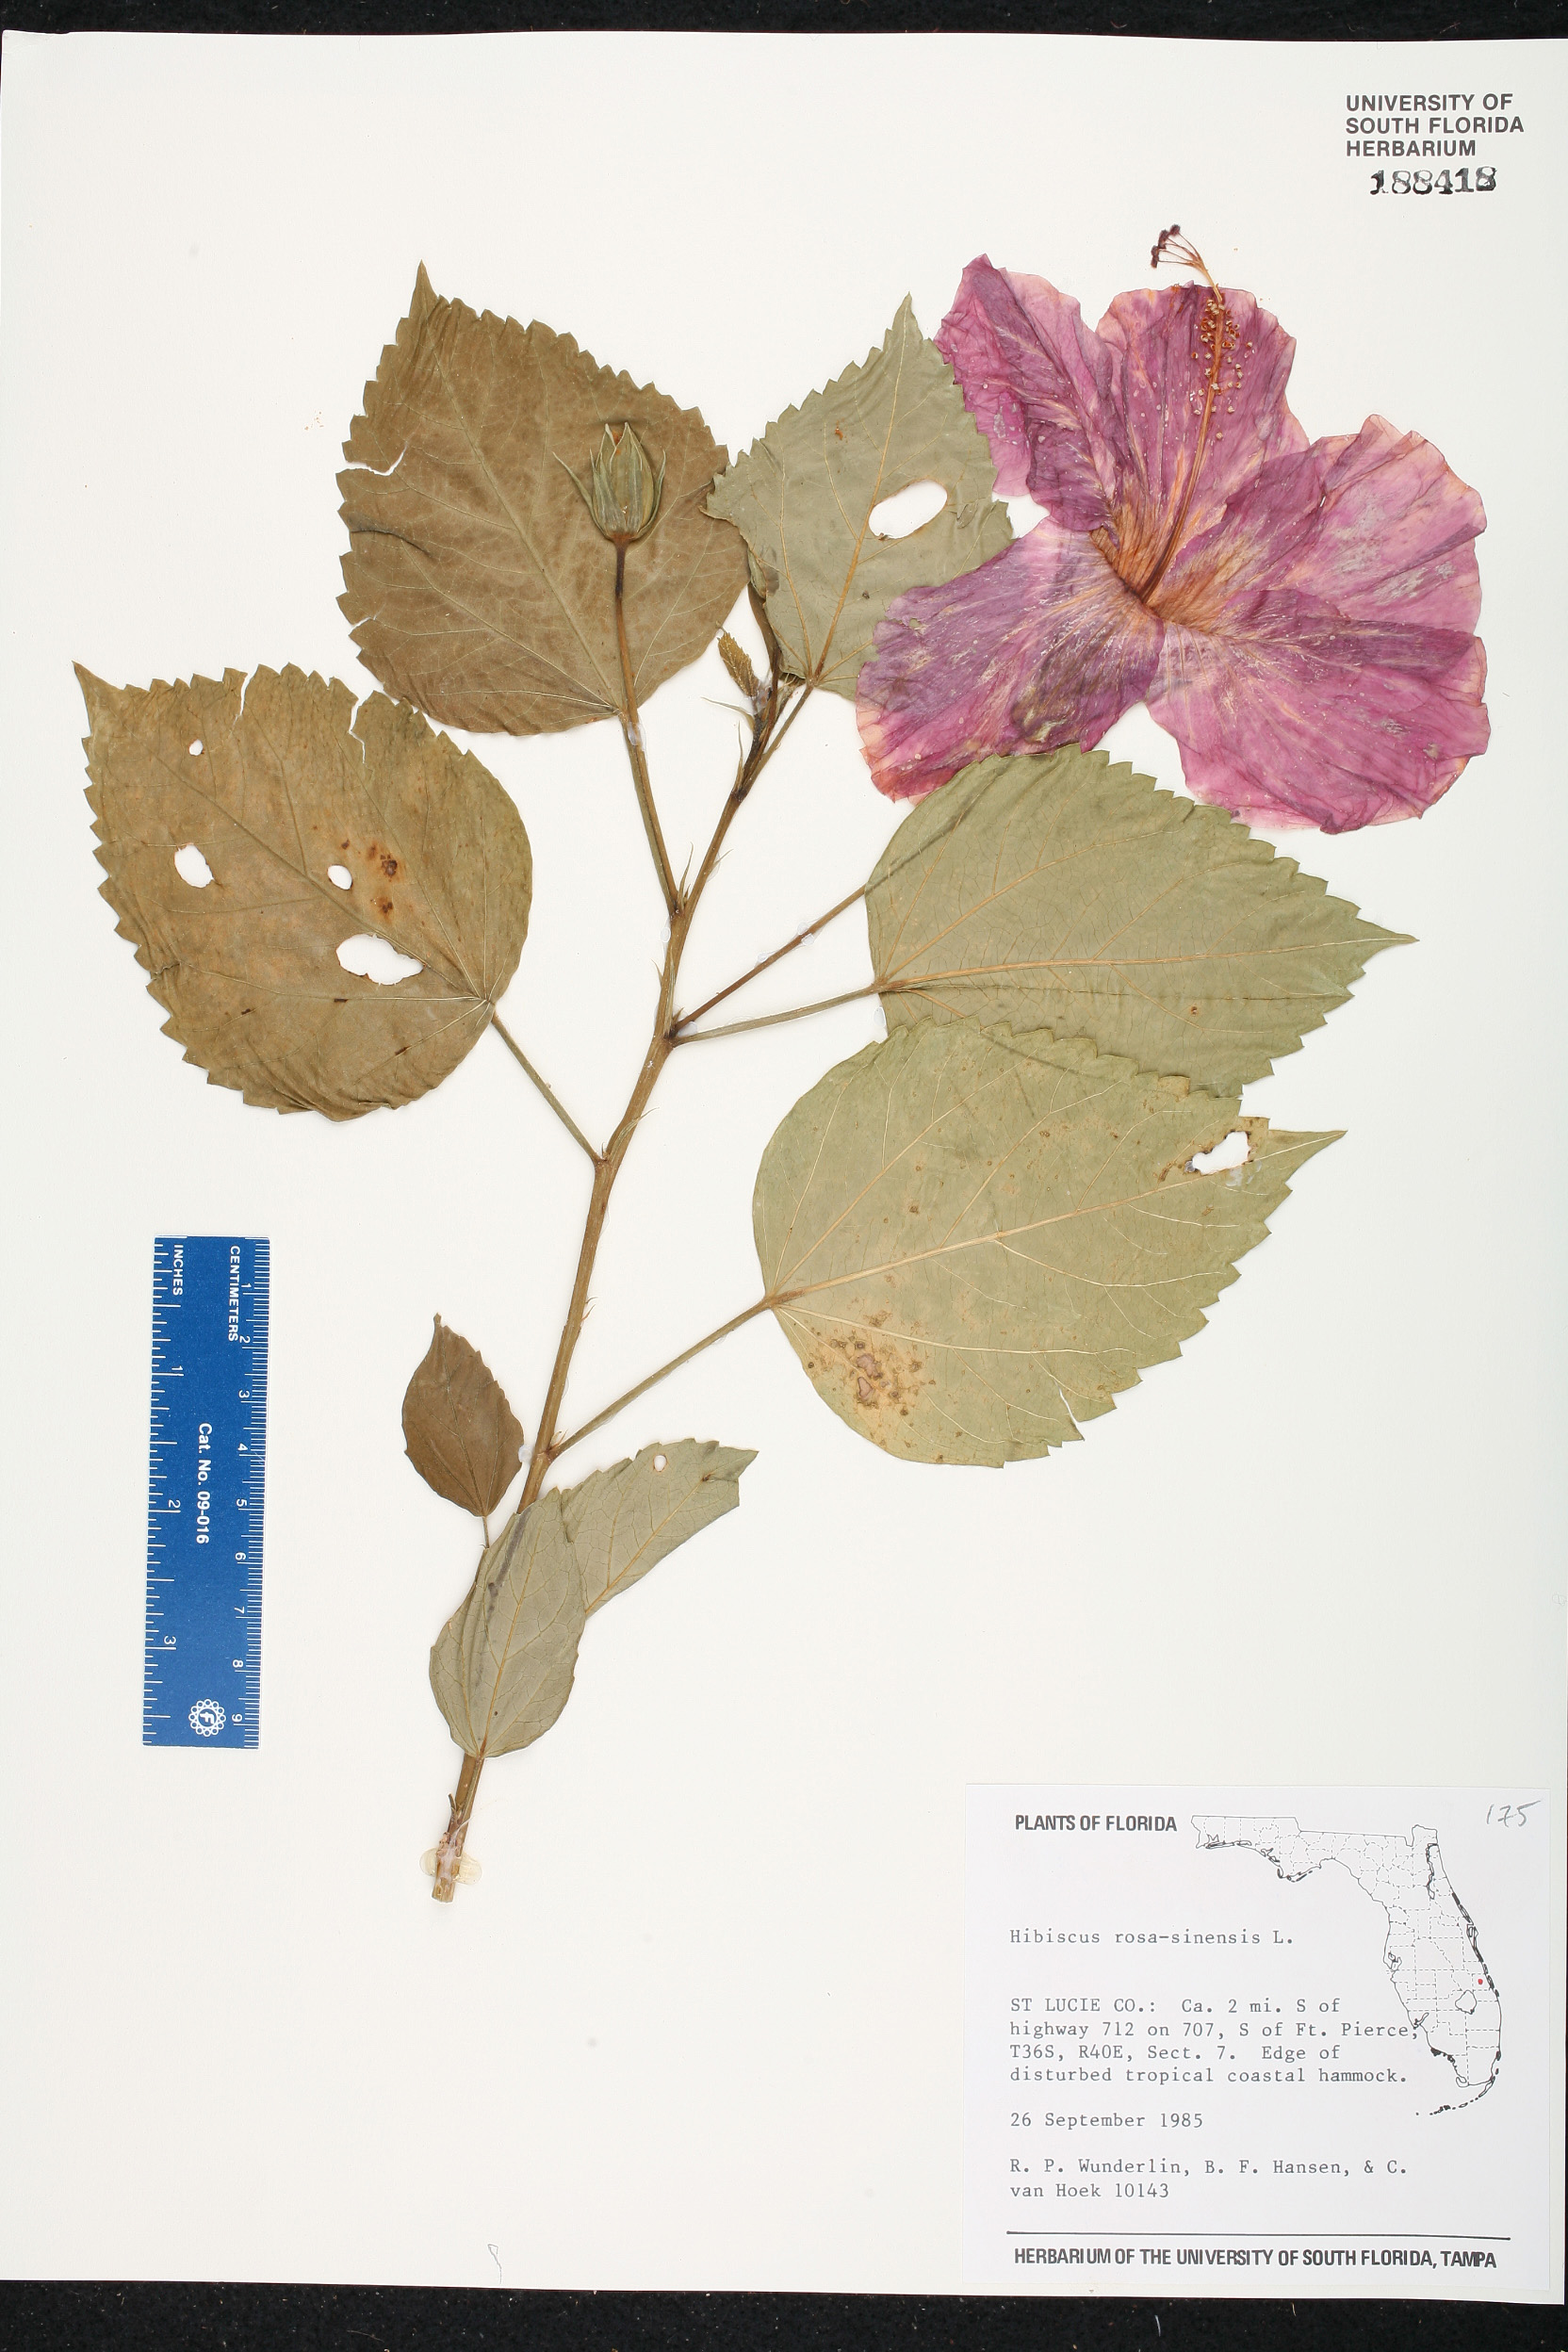 Herbarium specimen details isb atlas of florida plants family name izmirmasajfo Gallery